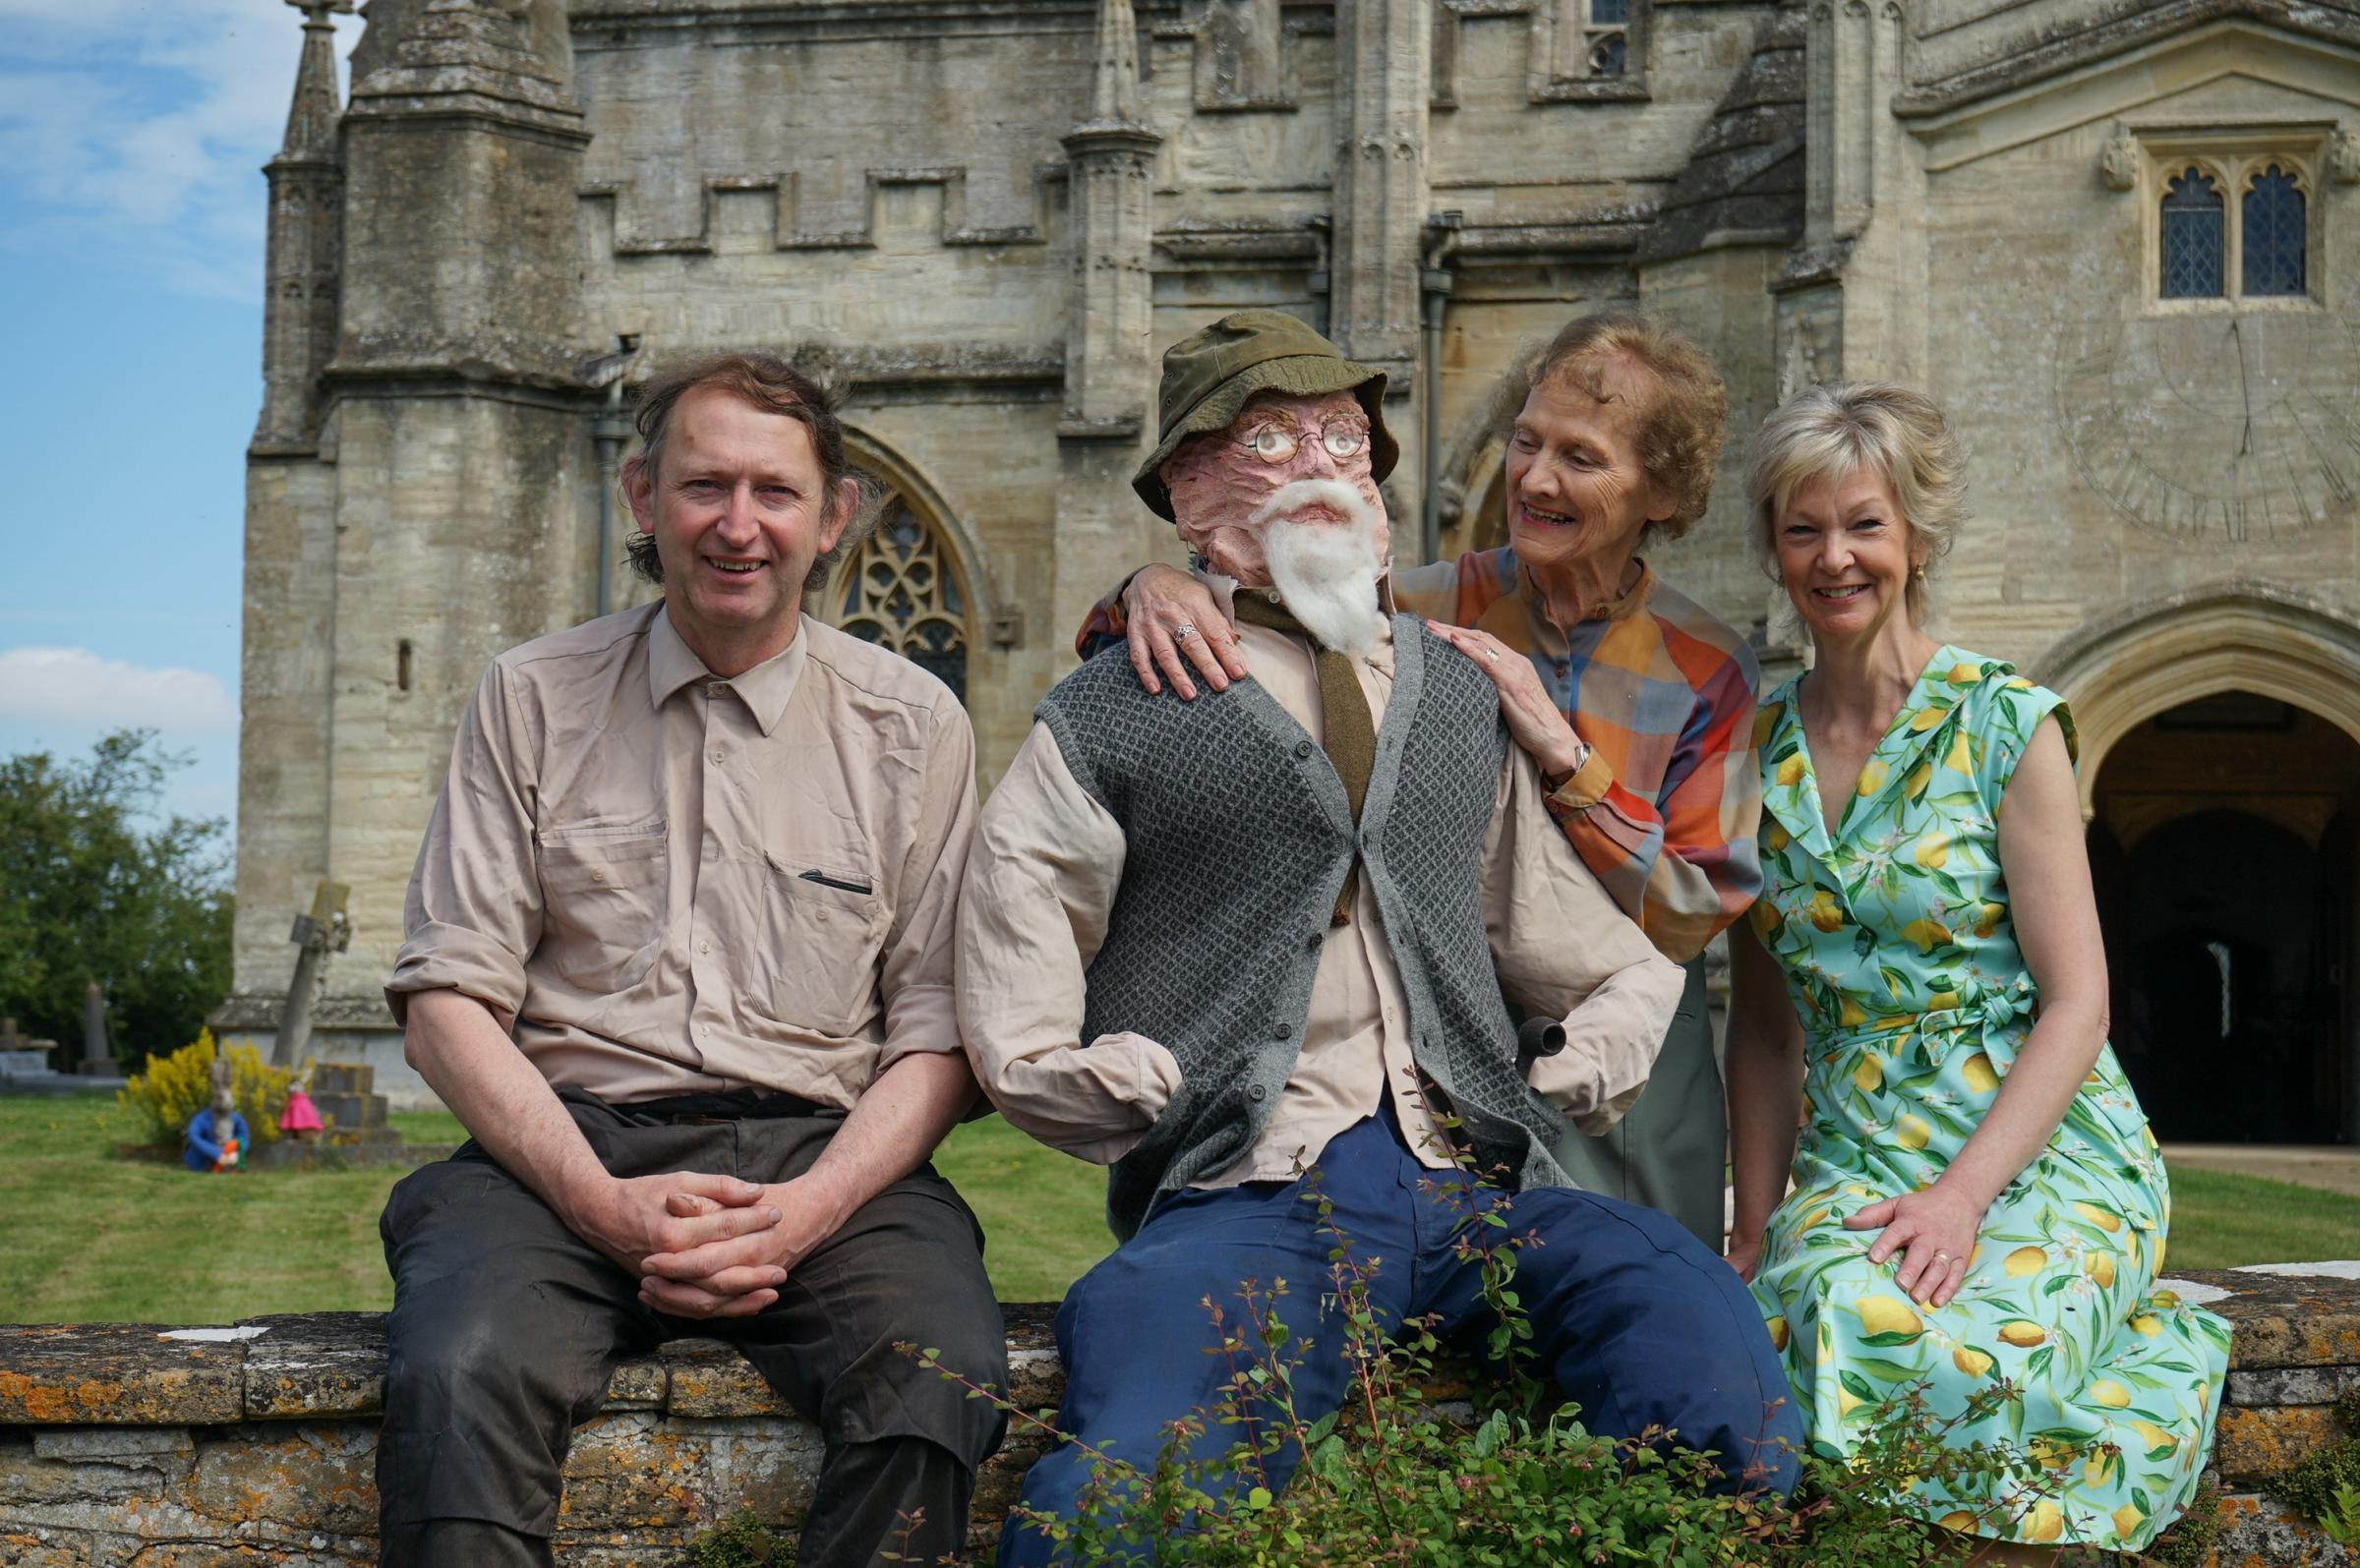 Look out for Peter Rabbit at Steeple Ashton harvest festival - and some of the other Beatrix Potter characters